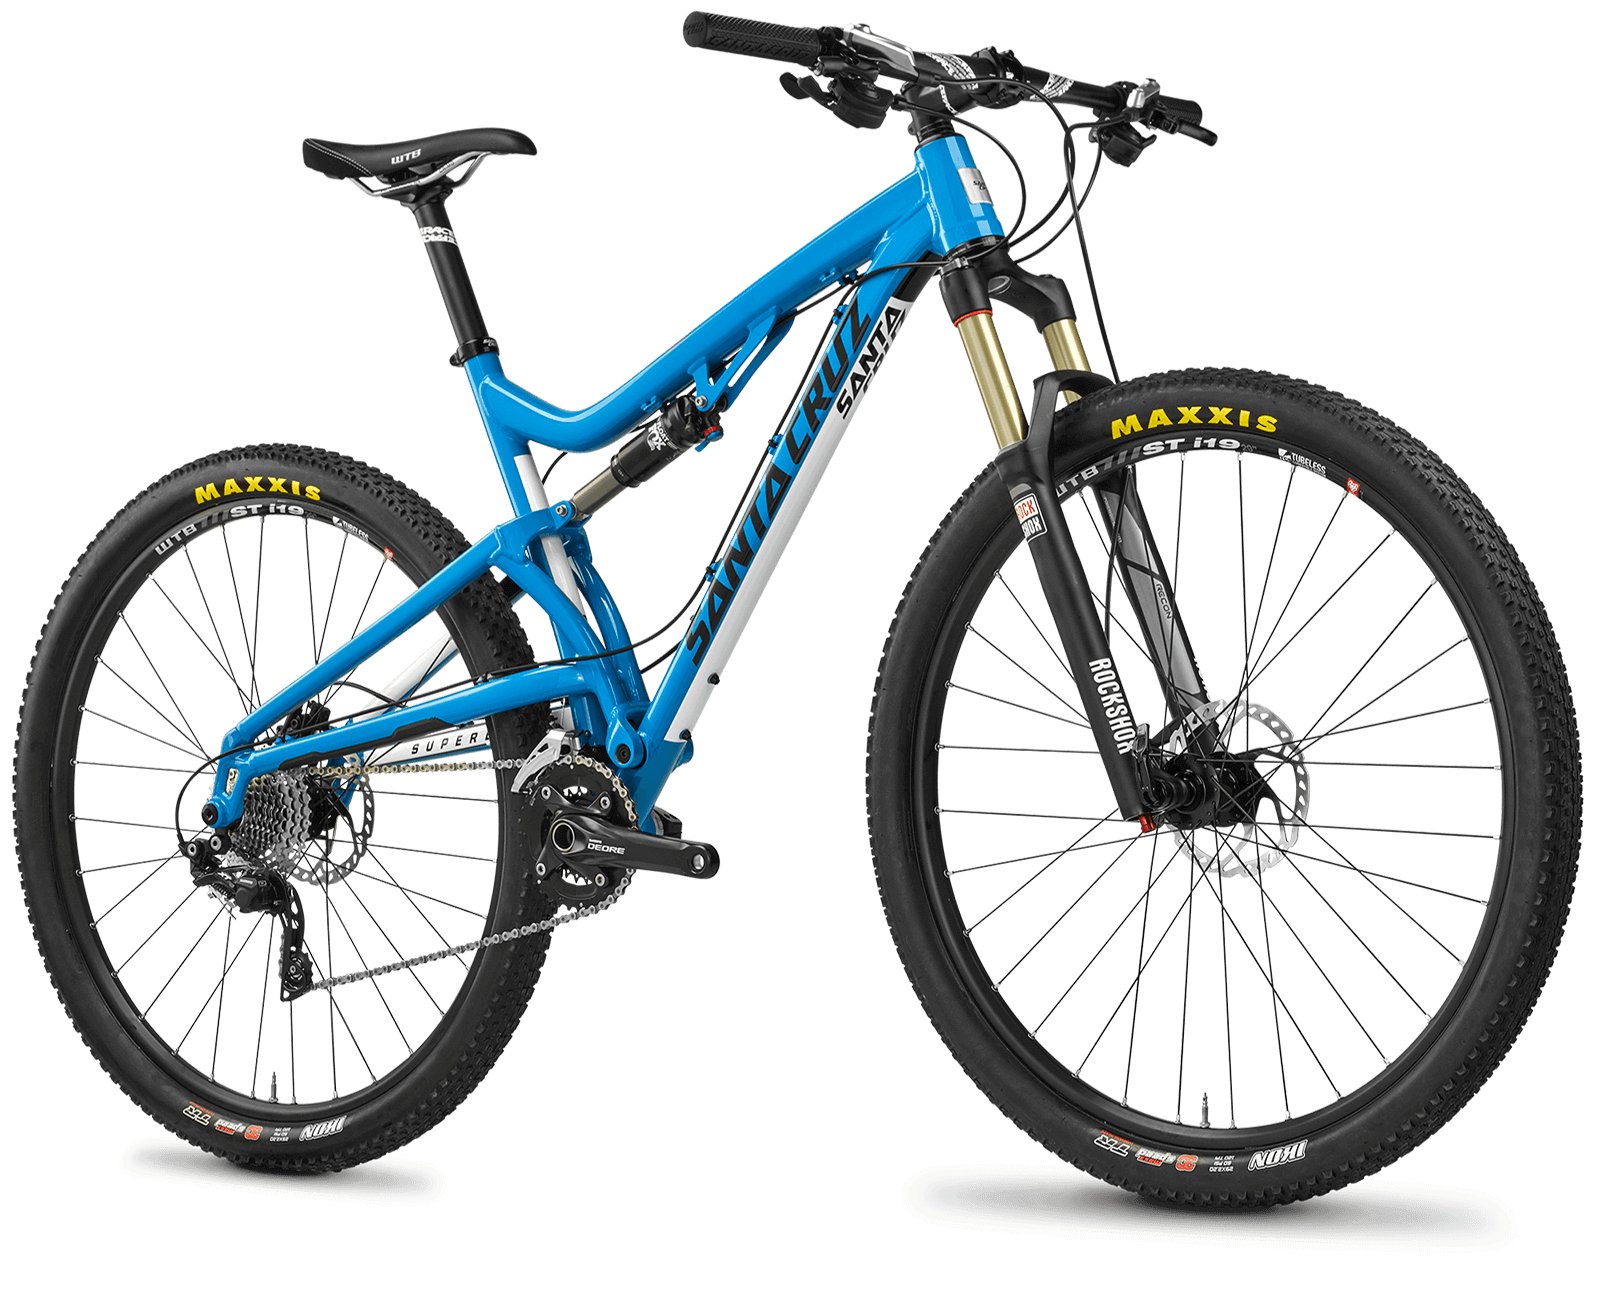 Santa Cruz Superlight, Blue Bike, Cycle Png image #45202